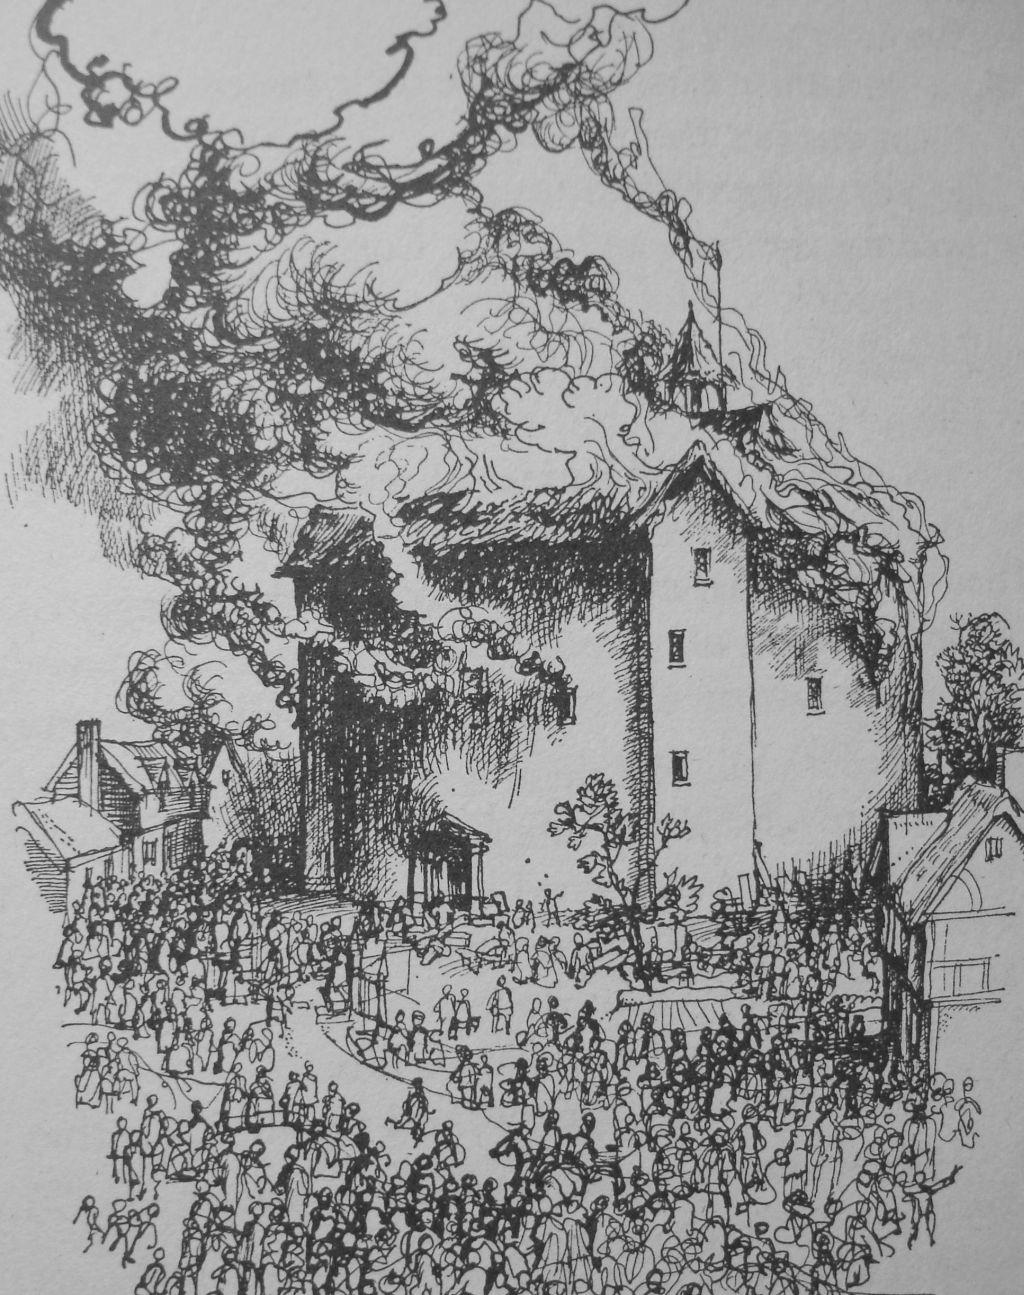 29th June 1613: The Globe Theatre in London burns to the ground   HistoryPod